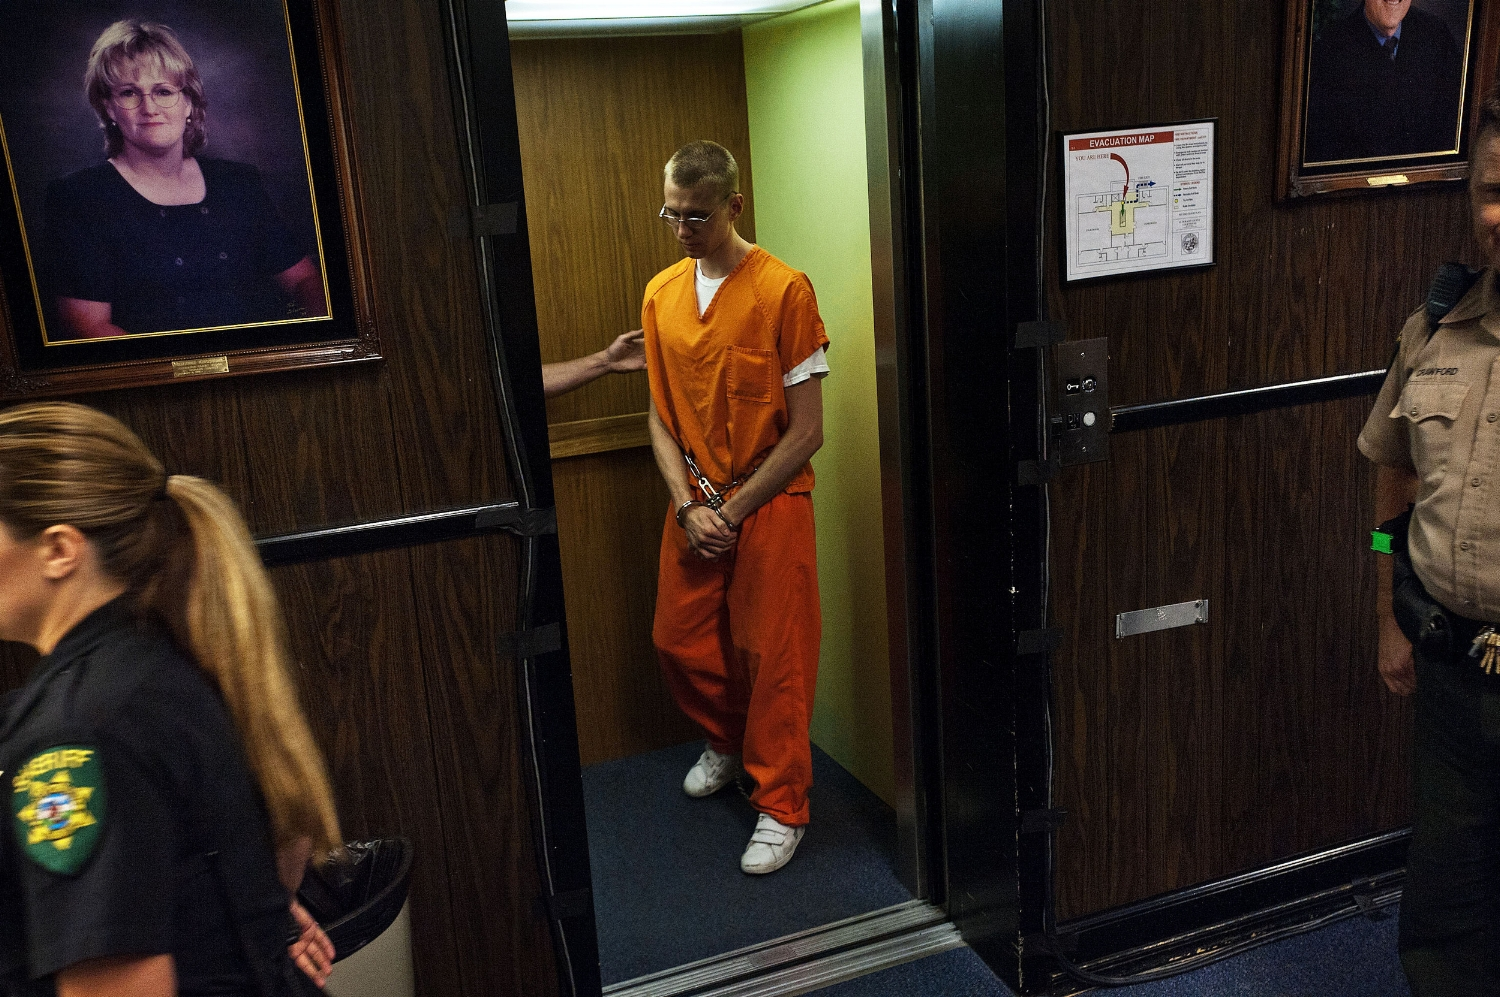 Steven Colver steps out of the elevator to be sentenced at the El Dorado County Superior court in Placerville on Friday, August 12, 2011. Colver and his girlfriend Tylar Witt were convicted of murdering Tylar's mother, Joanne Witt